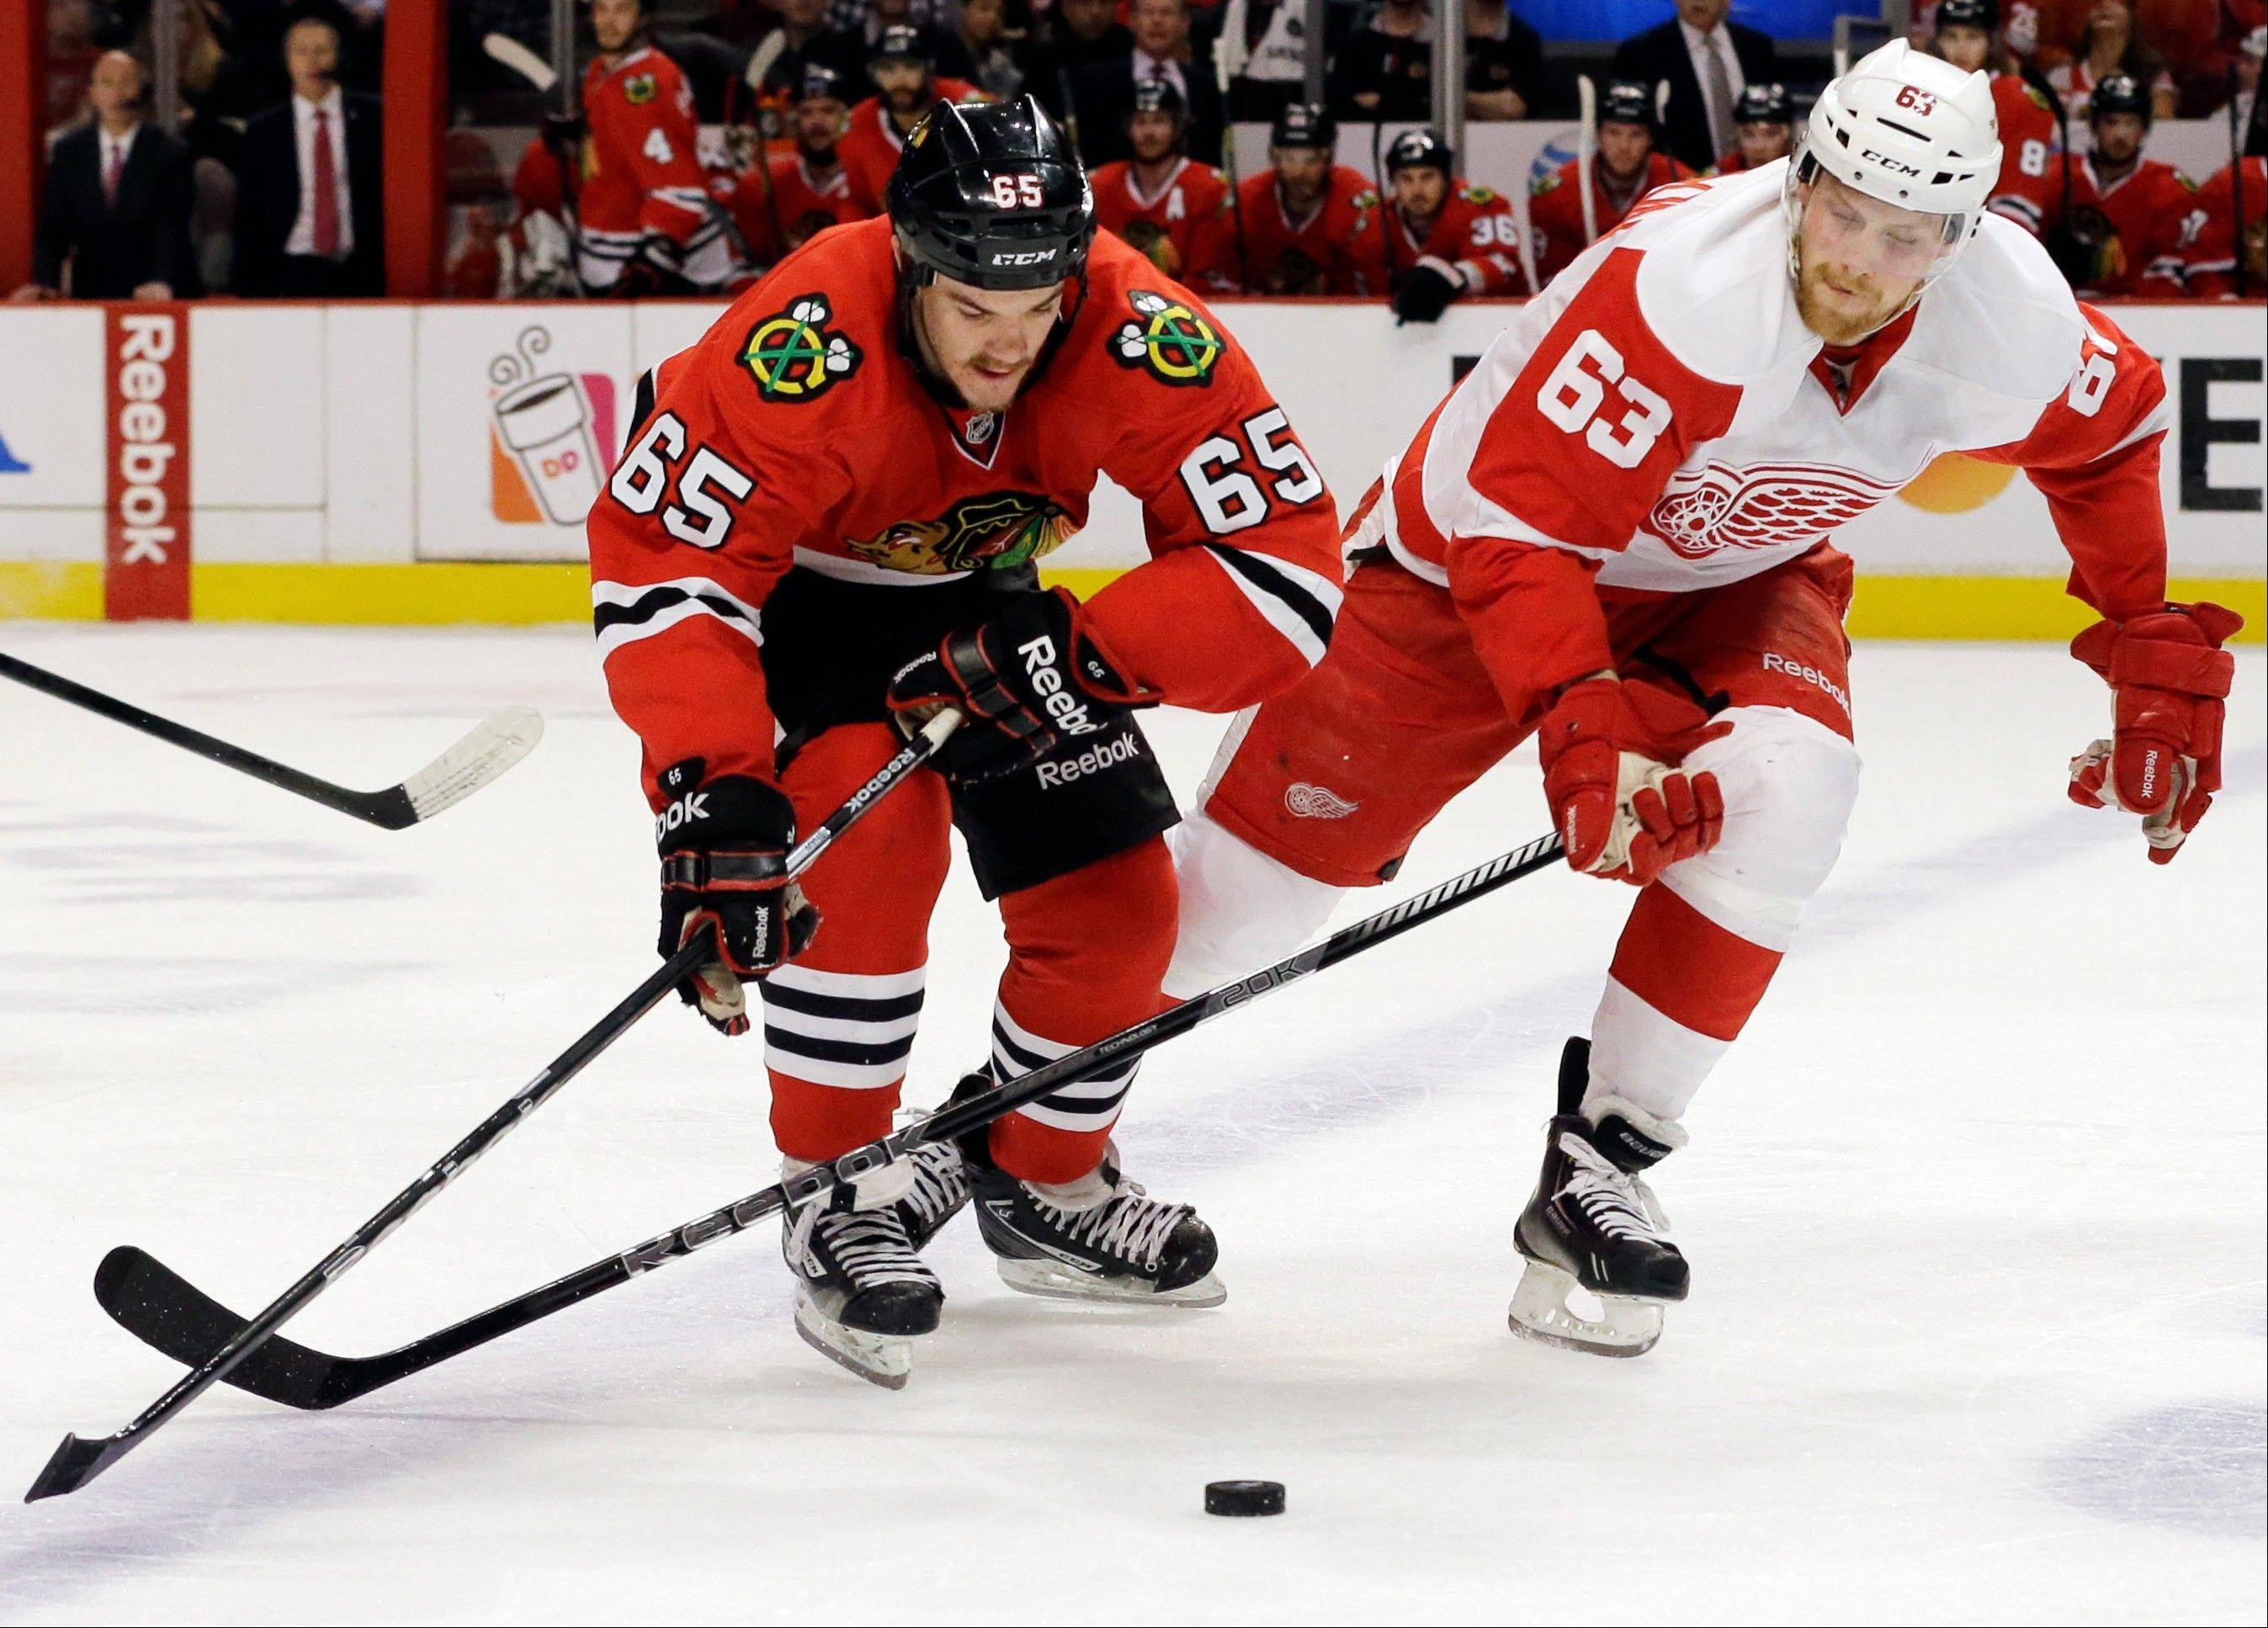 Chicago Blackhawks' Andrew Shaw, left, battles for the puck against Detroit Red Wings' Joakim Andersson (63) during the second period of Game 5 of the NHL hockey Stanley Cup playoffs Western Conference semifinals in Chicago, Saturday, May 25, 2013. The Blackhawks won 4-1.